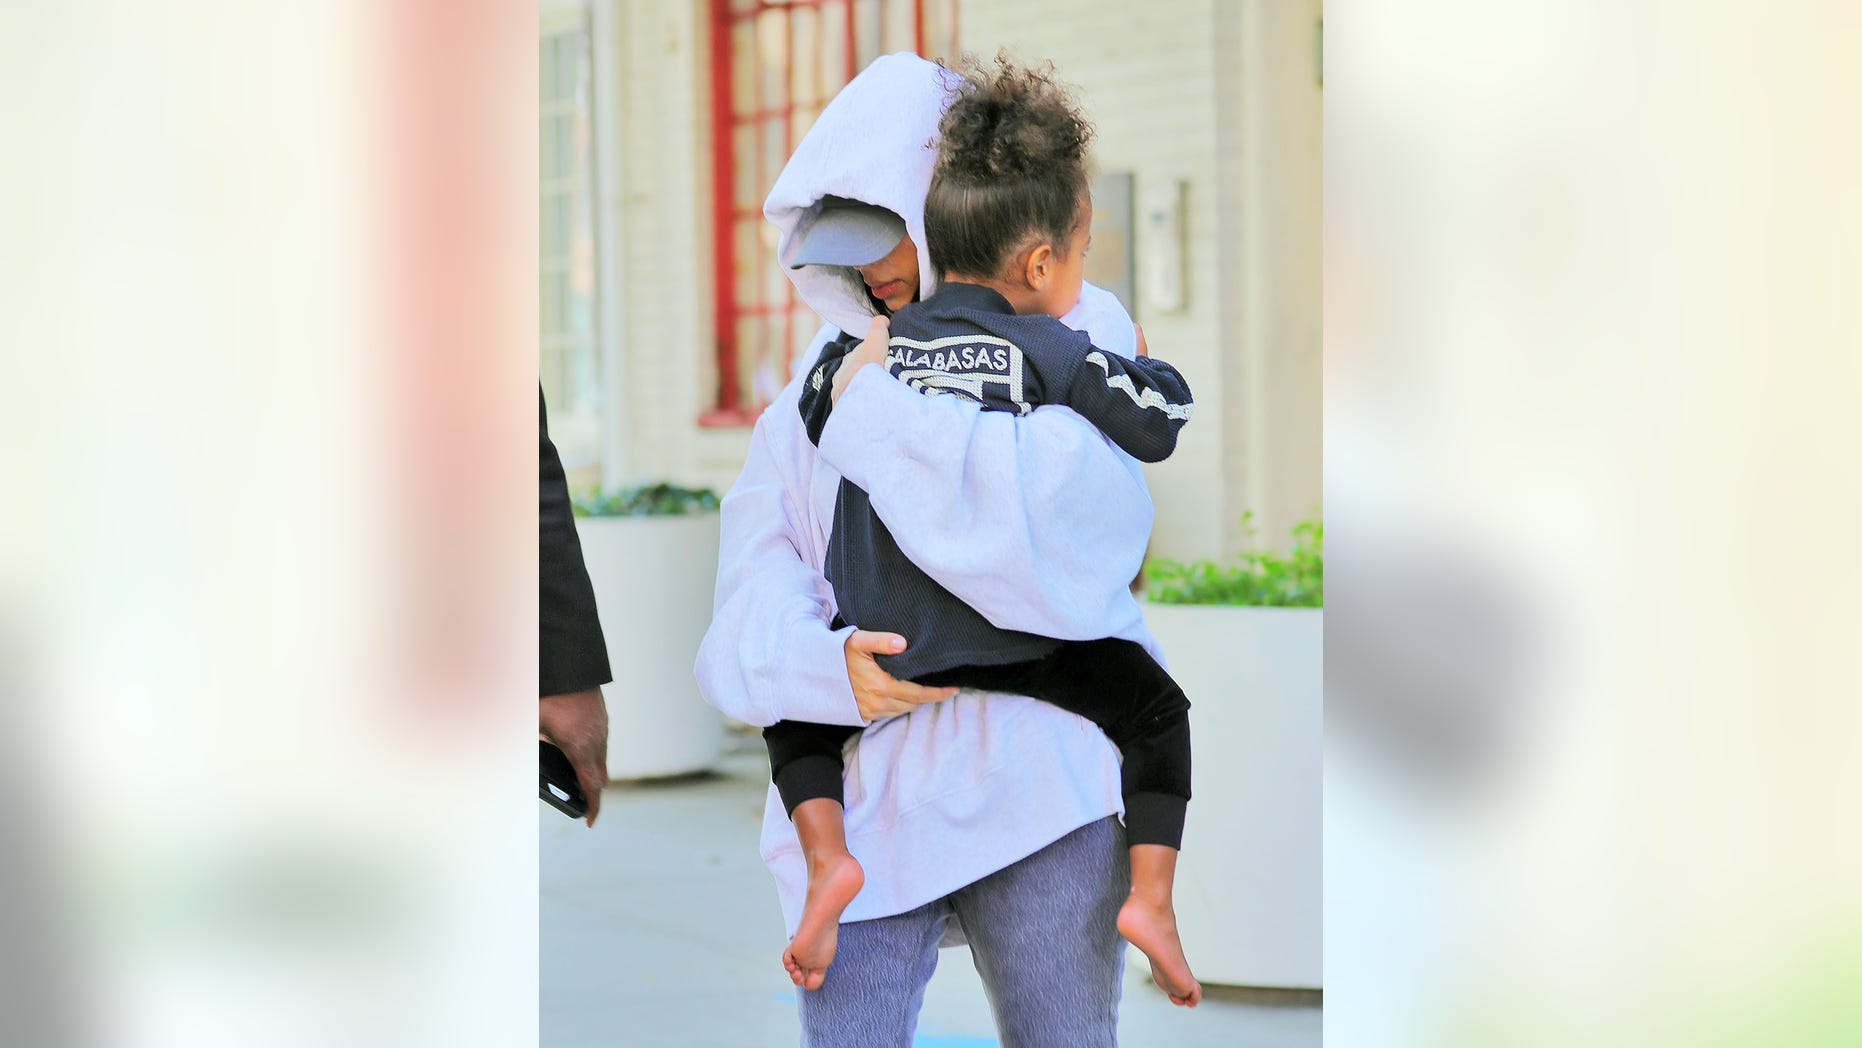 Kim Kardashian runs to her waiting SUV with North West in New York.